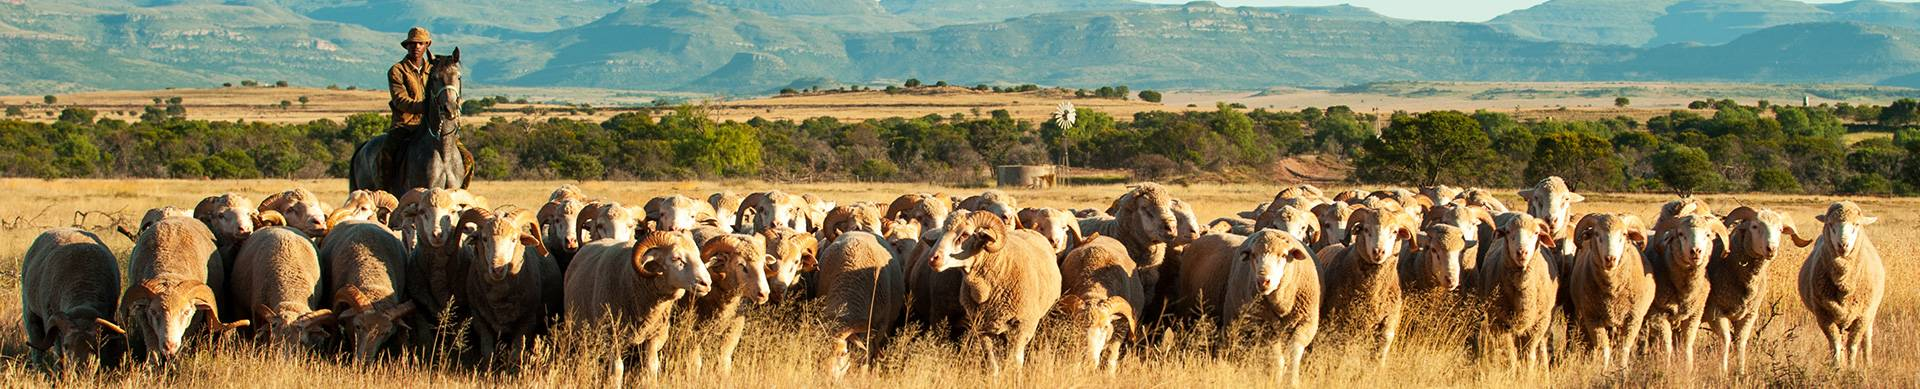 Wool-growing-membership-in-south-africa